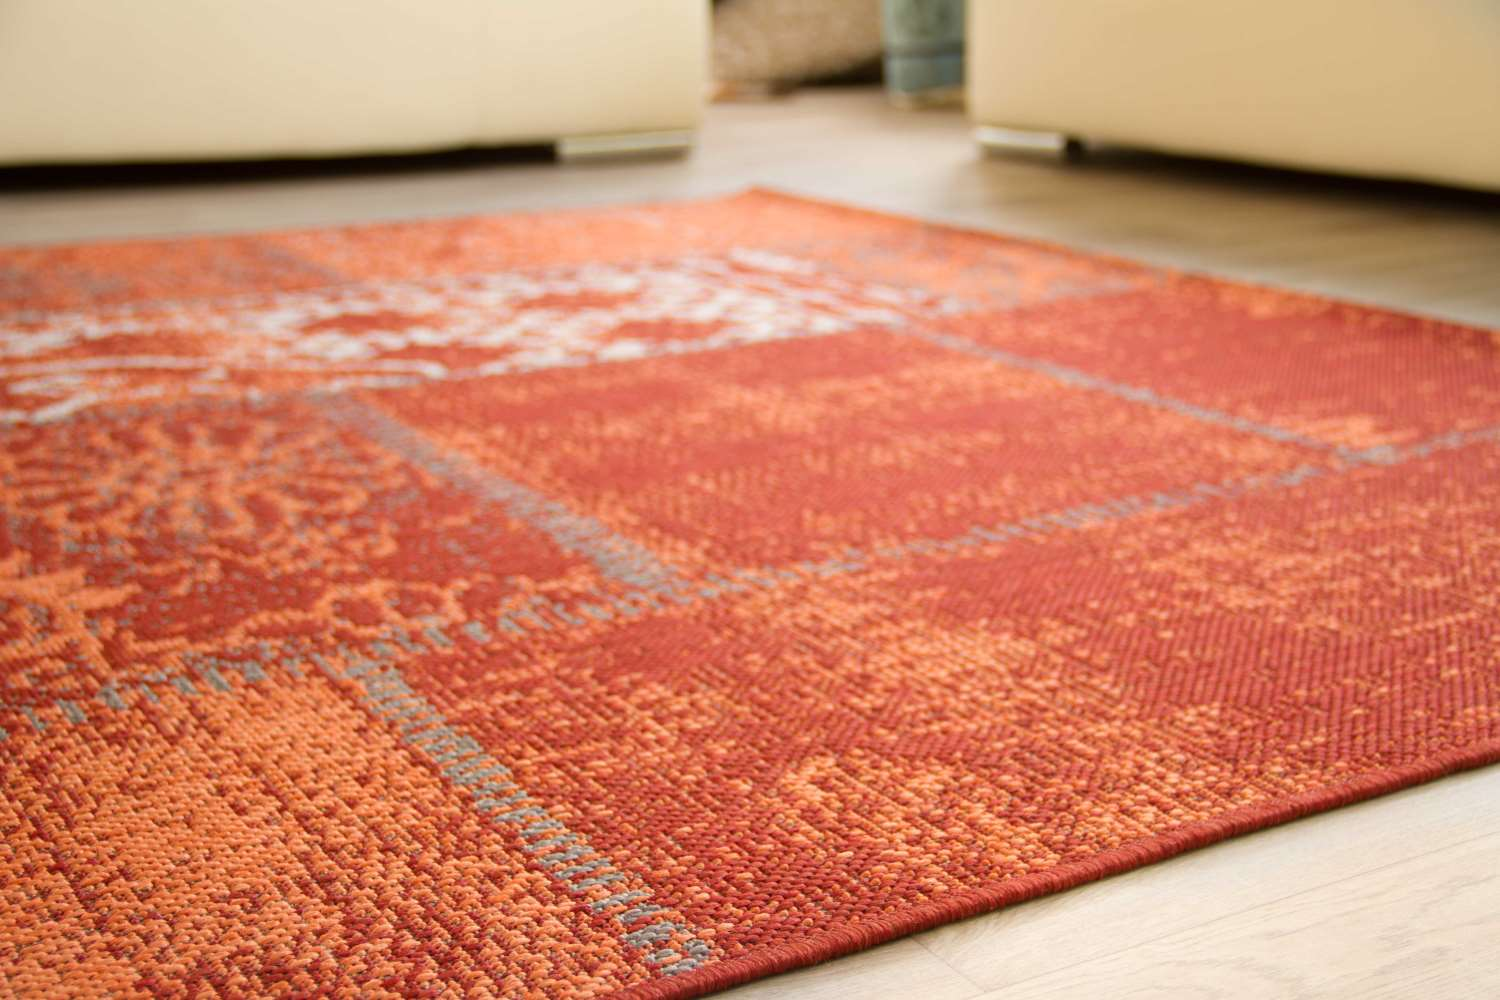 Teppich design  In- und Outdoor Teppich Dalarna Design - Vintage | global-carpet